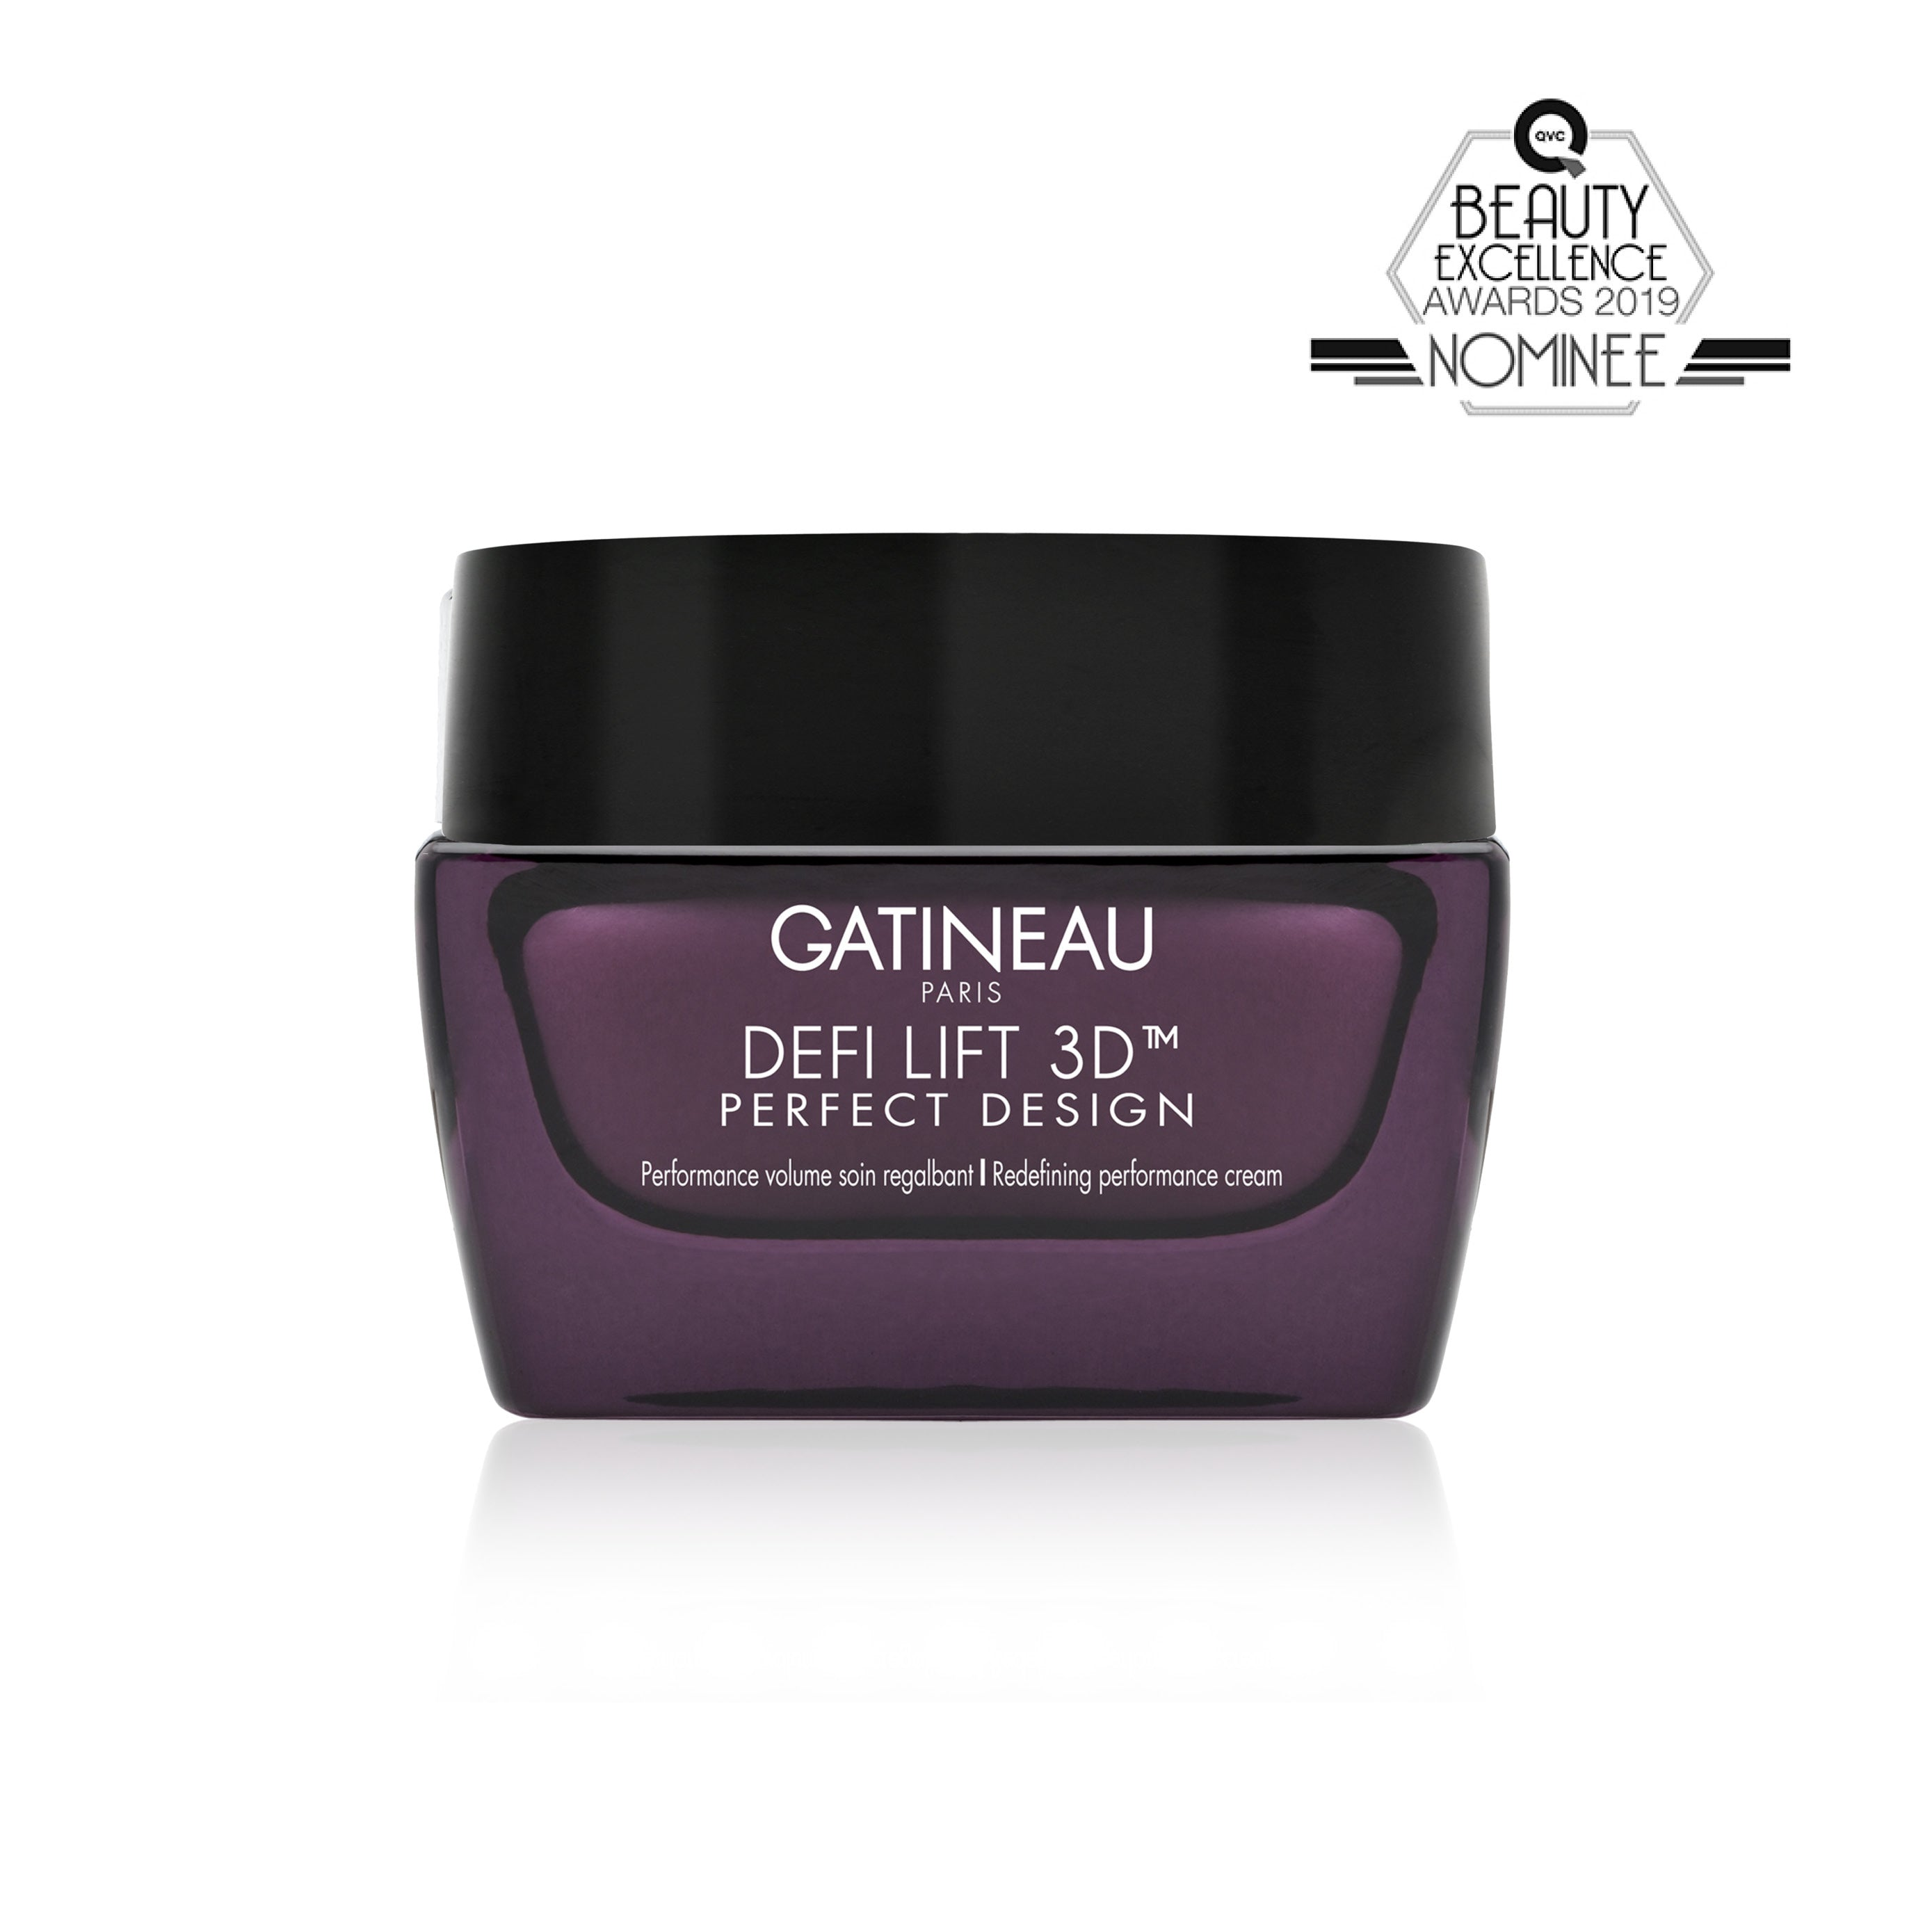 Gatineau DefiLift 3D™ Perfect Design Redefining Performance Cream